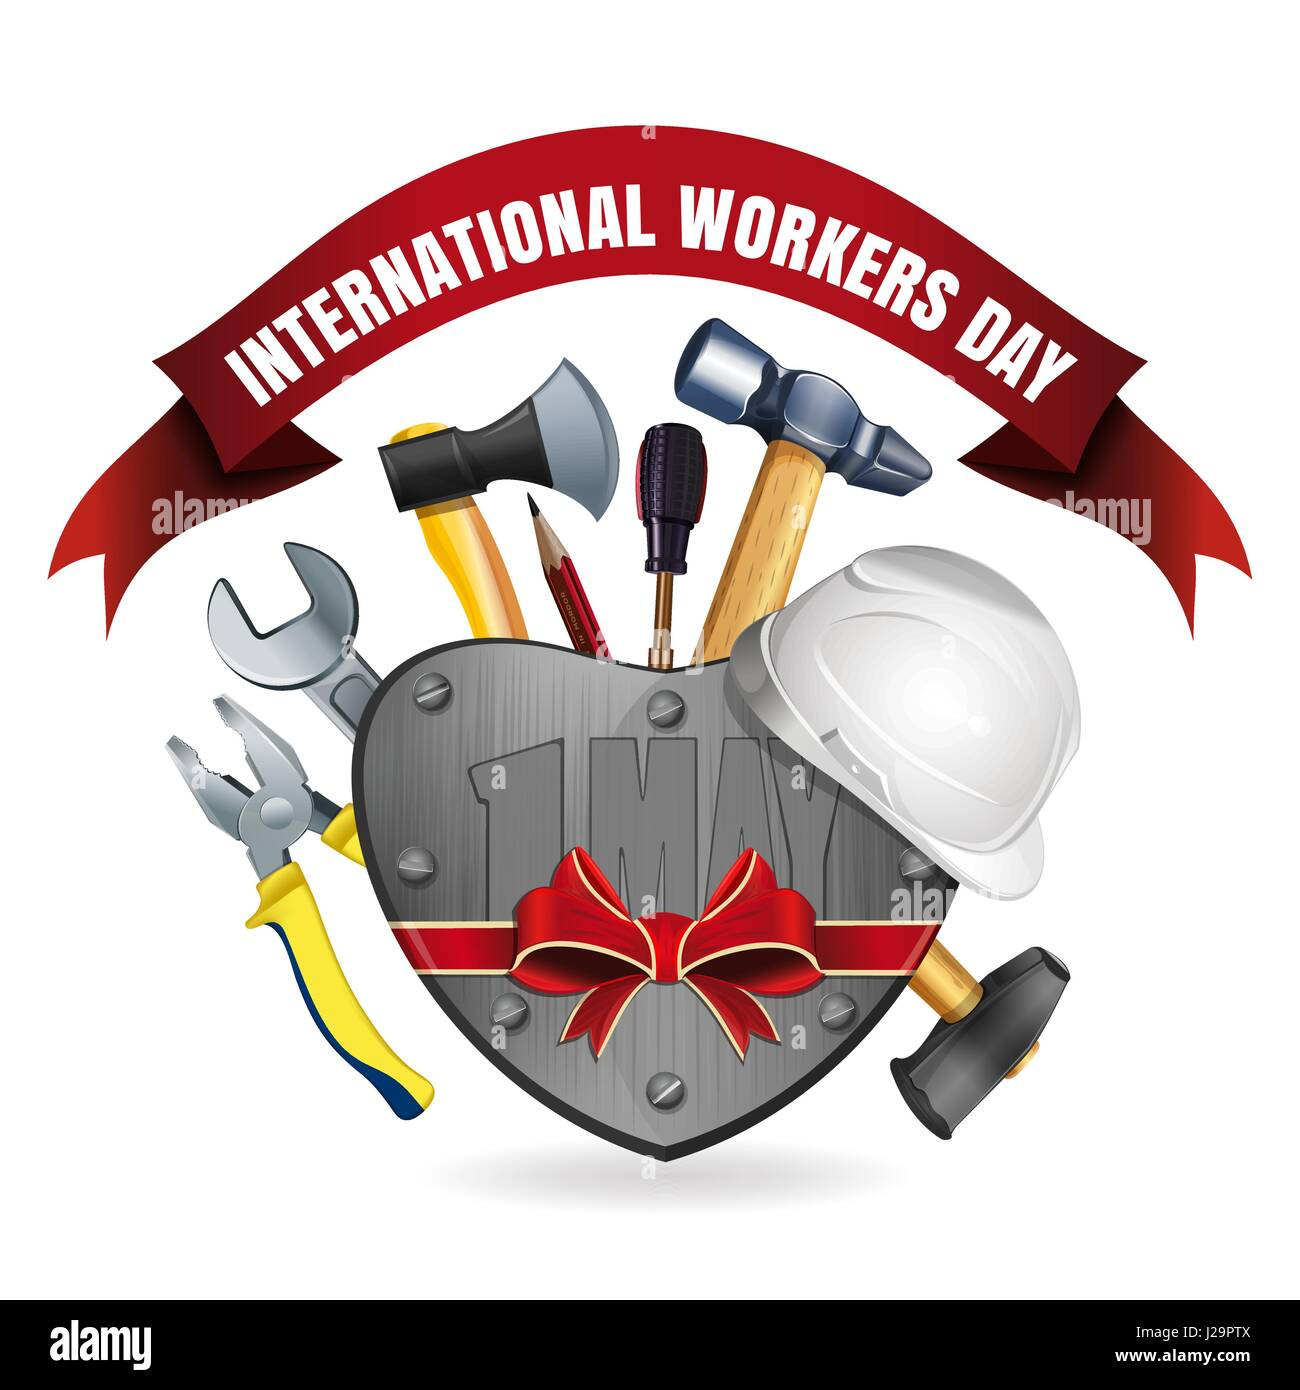 1 may happy international workers day may day greeting card for happy international workers day may day greeting card for labor day with a set of tools vector illustration buycottarizona Choice Image